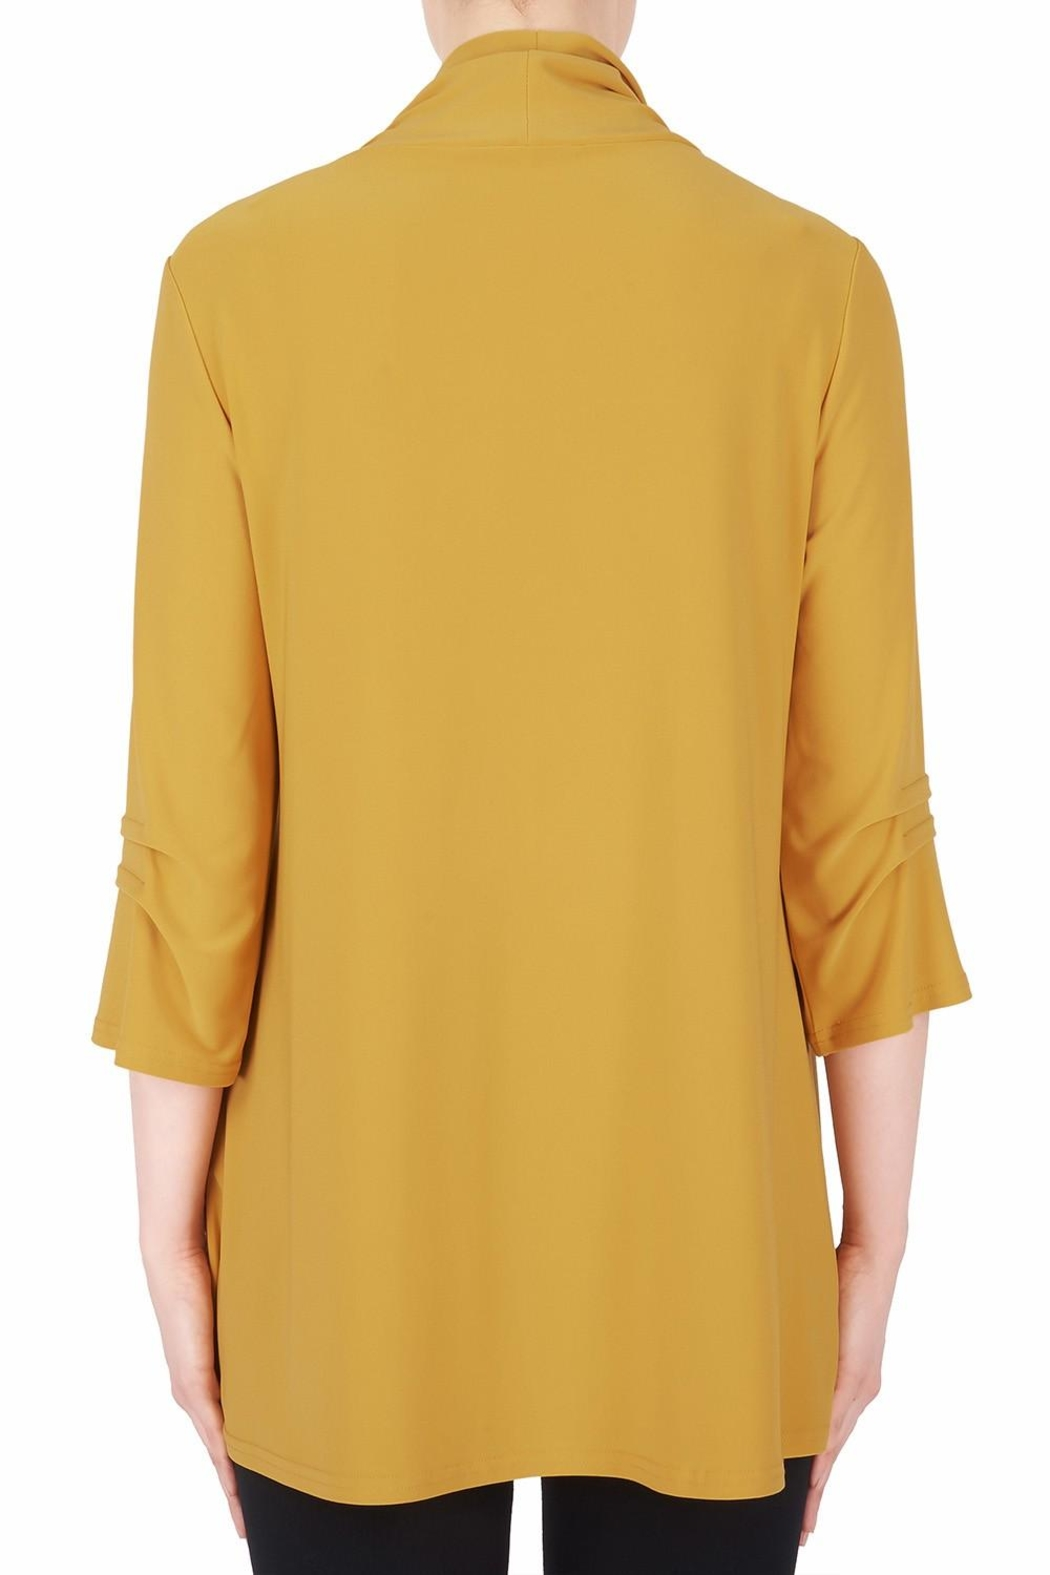 Joseph Ribkoff Tunic Top - Side Cropped Image